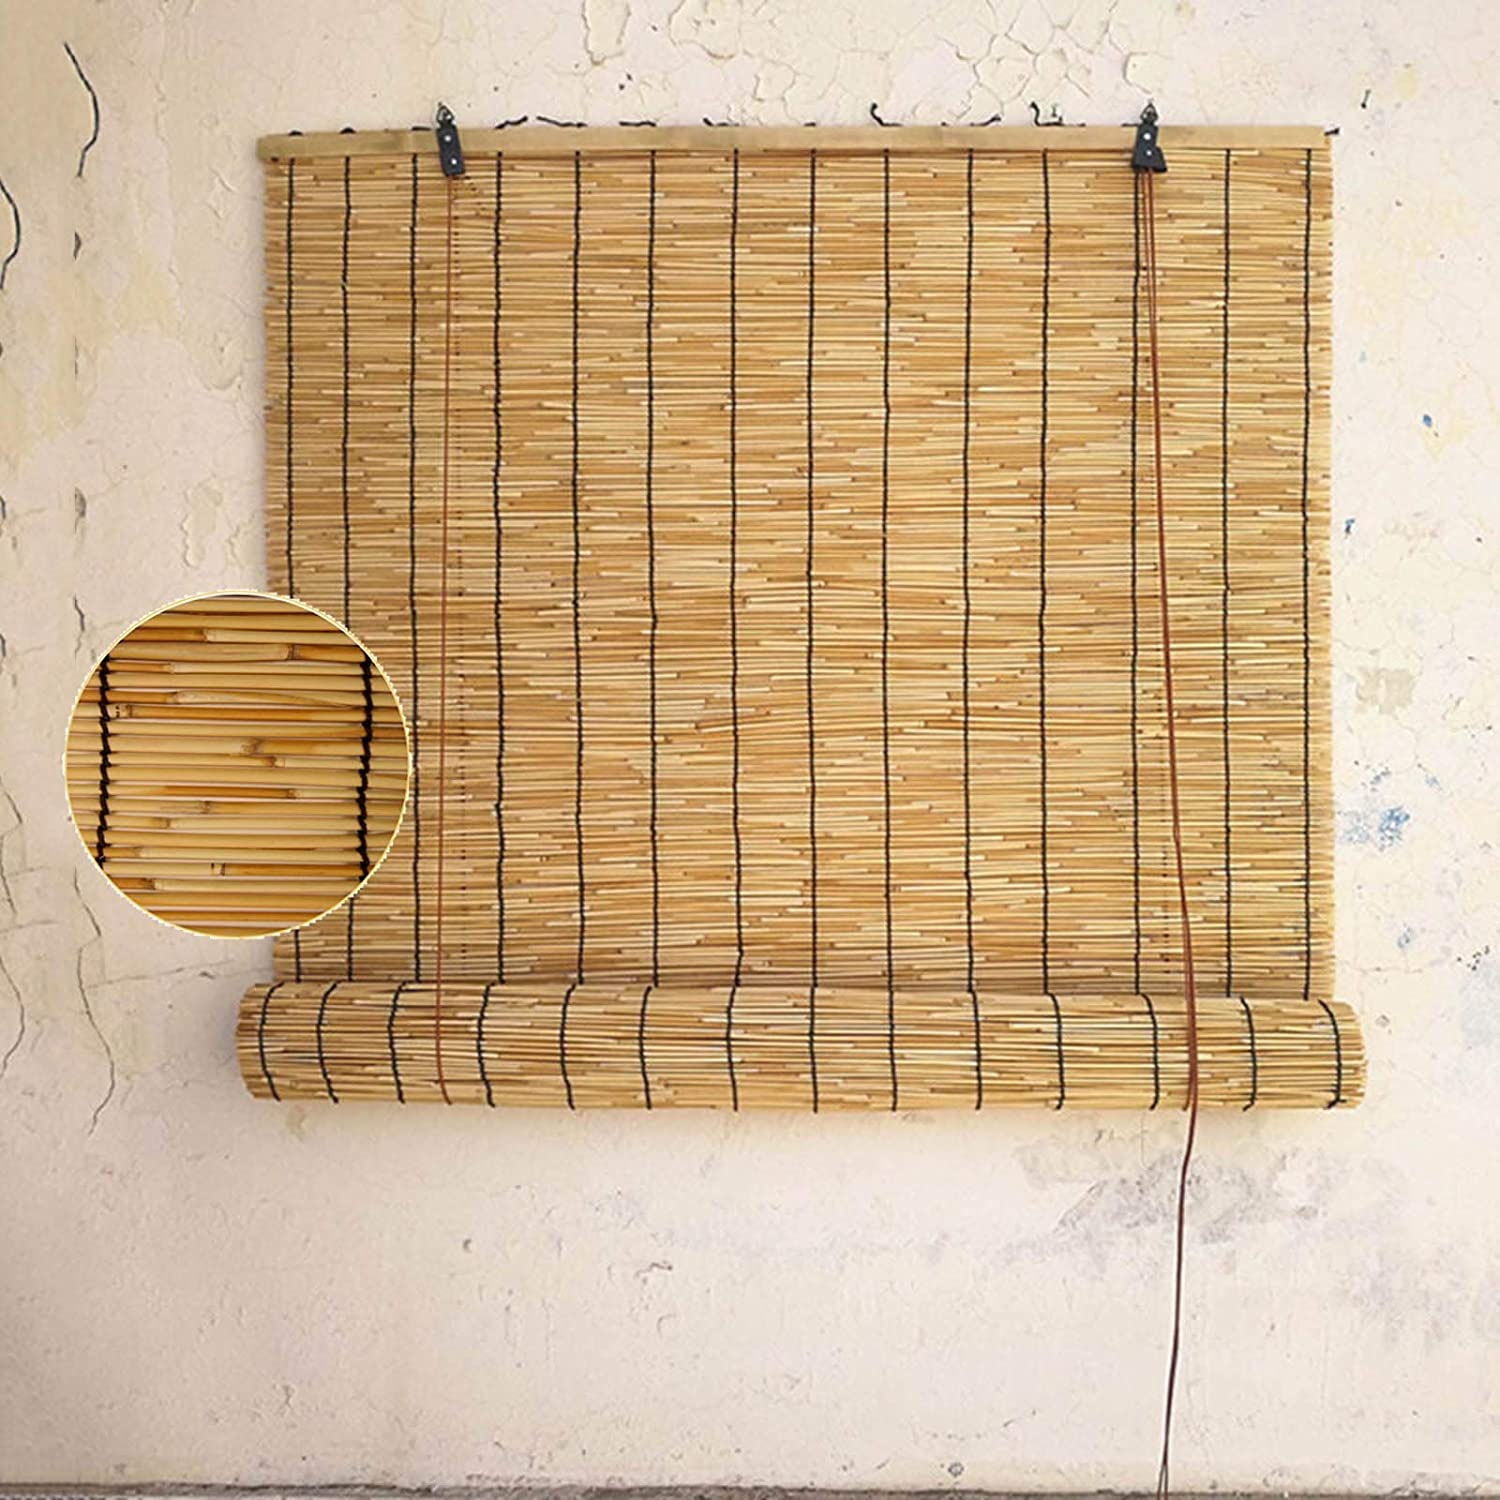 Reed Roll Up Shades-Bamboo Curtain-Roman Blinds,Outdoor Sunshade,Breathable And UV-Proof Roller Blinds,External/Internal Retro Decorative Natural,Reed Blinds for Windows,60x60cm/23.5x24in